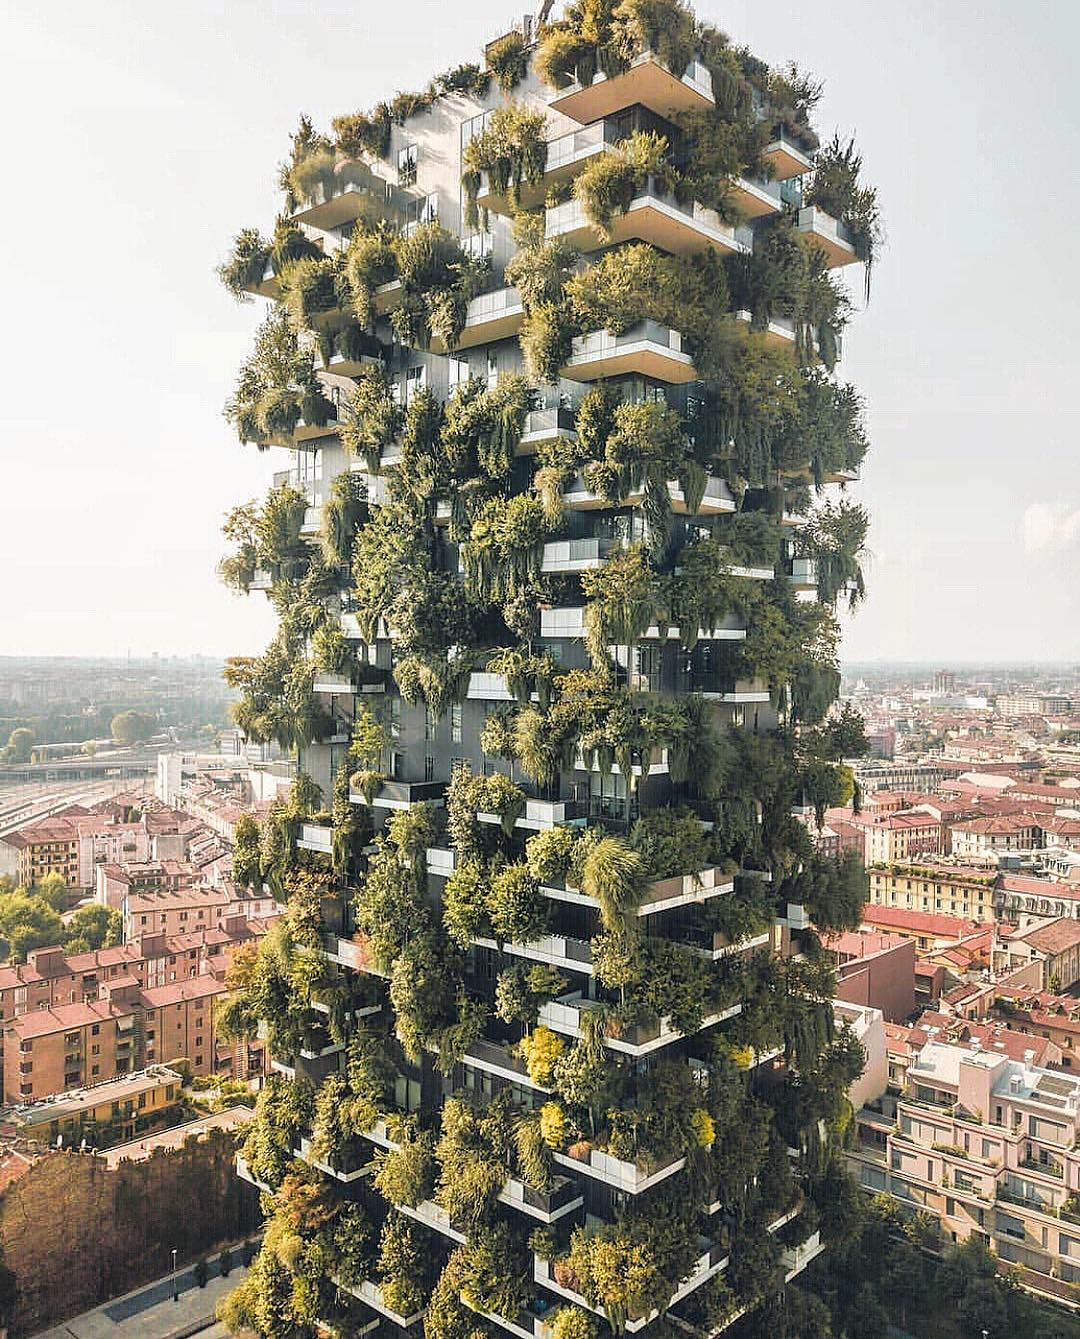 Bosco Verticalealso known as the vertical forest. MFW